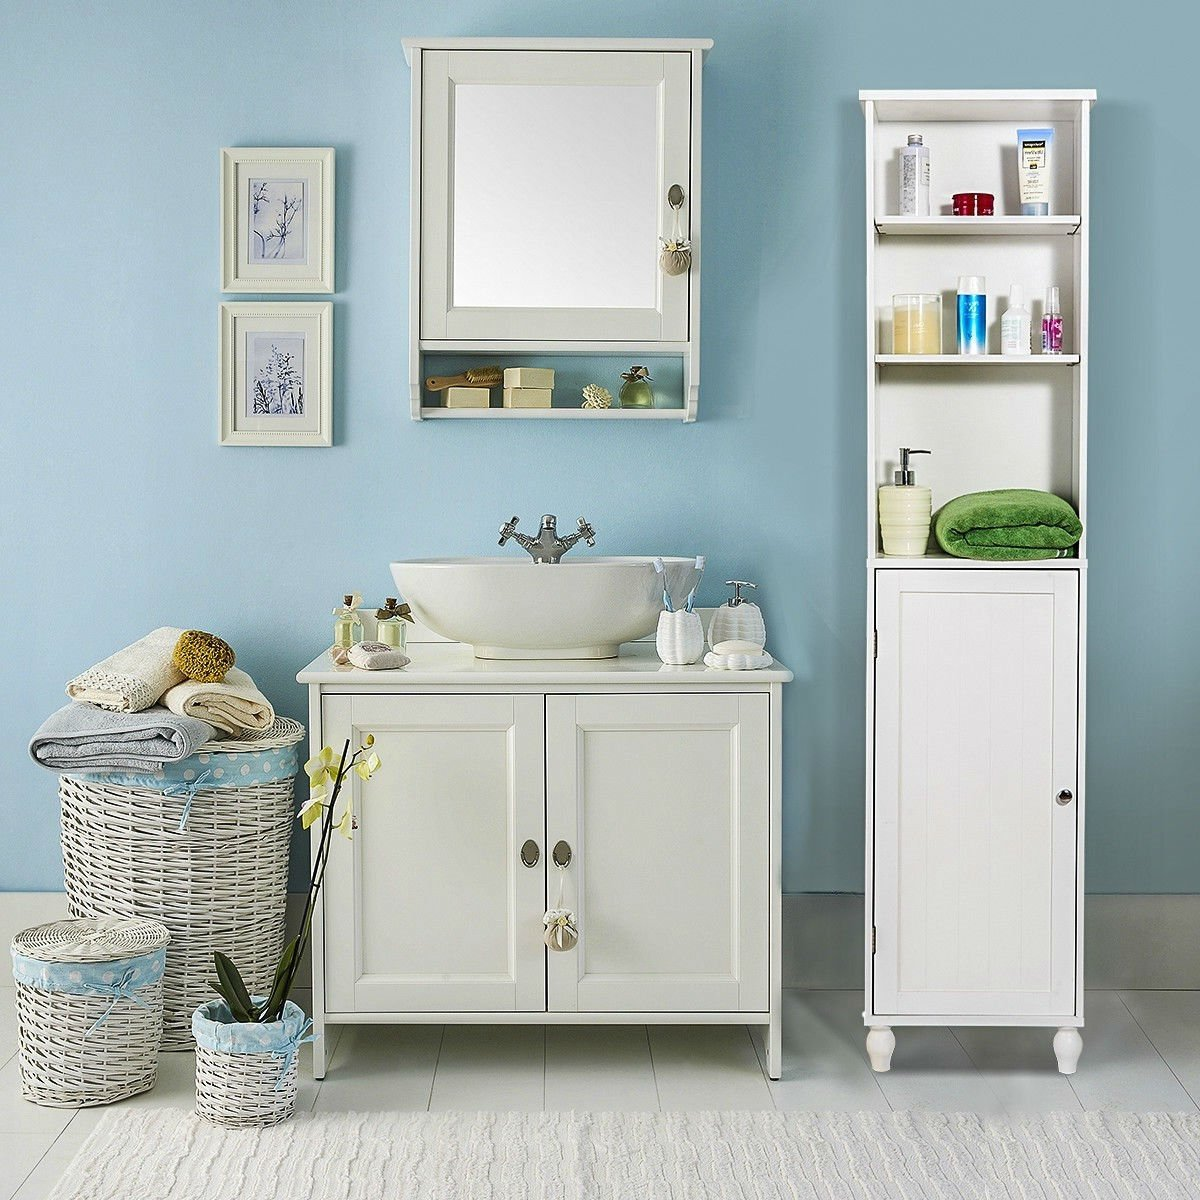 Bathroom Storage Tower Display Linen Cabinet with Open Shelves